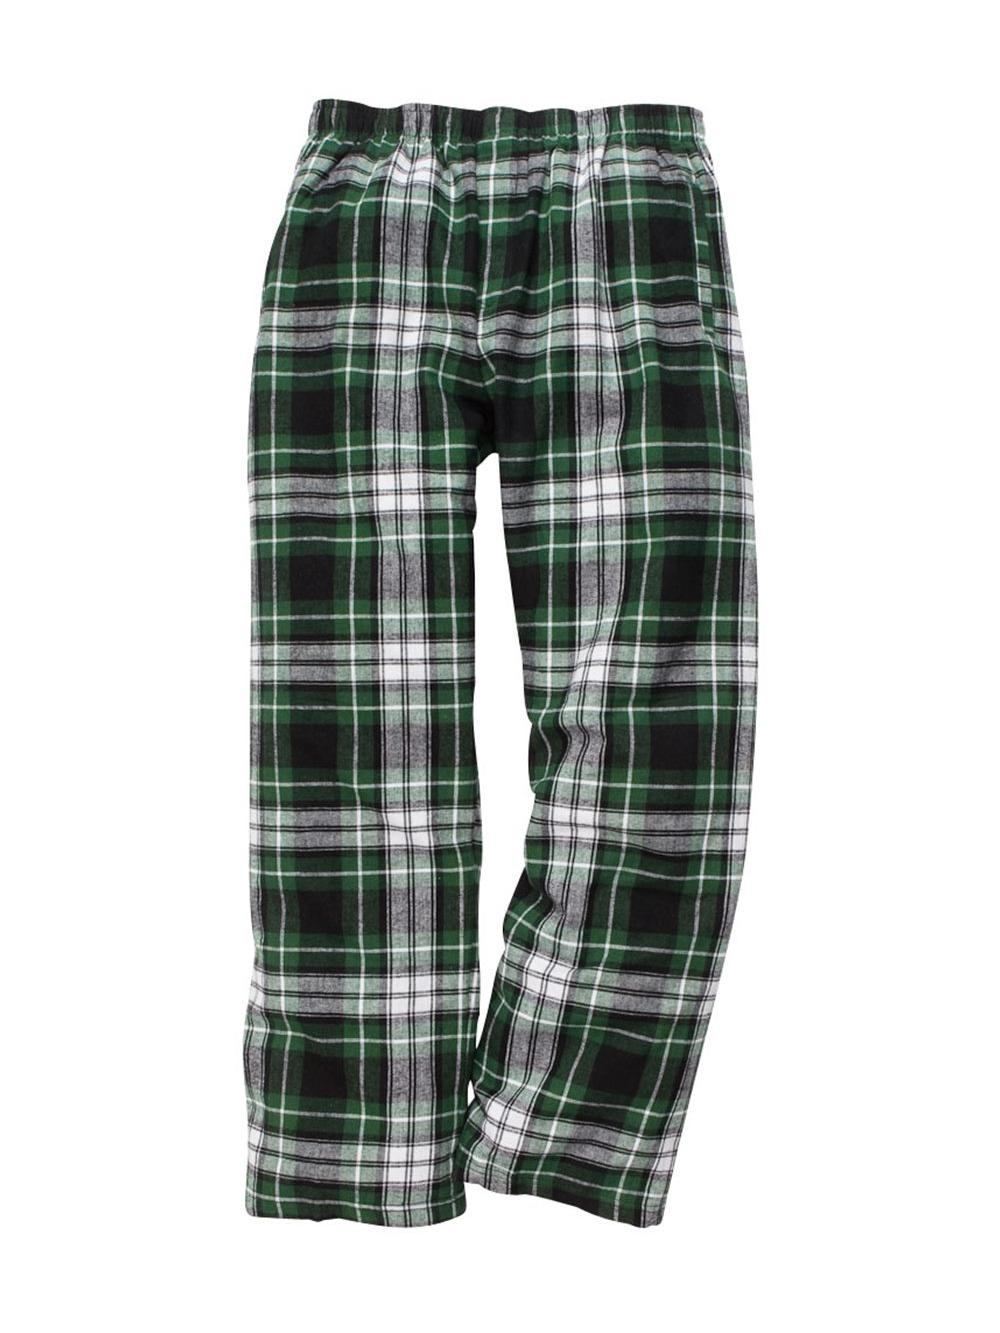 Boxercraft Wovens - Fall Youth Flannel Pants with Pockets